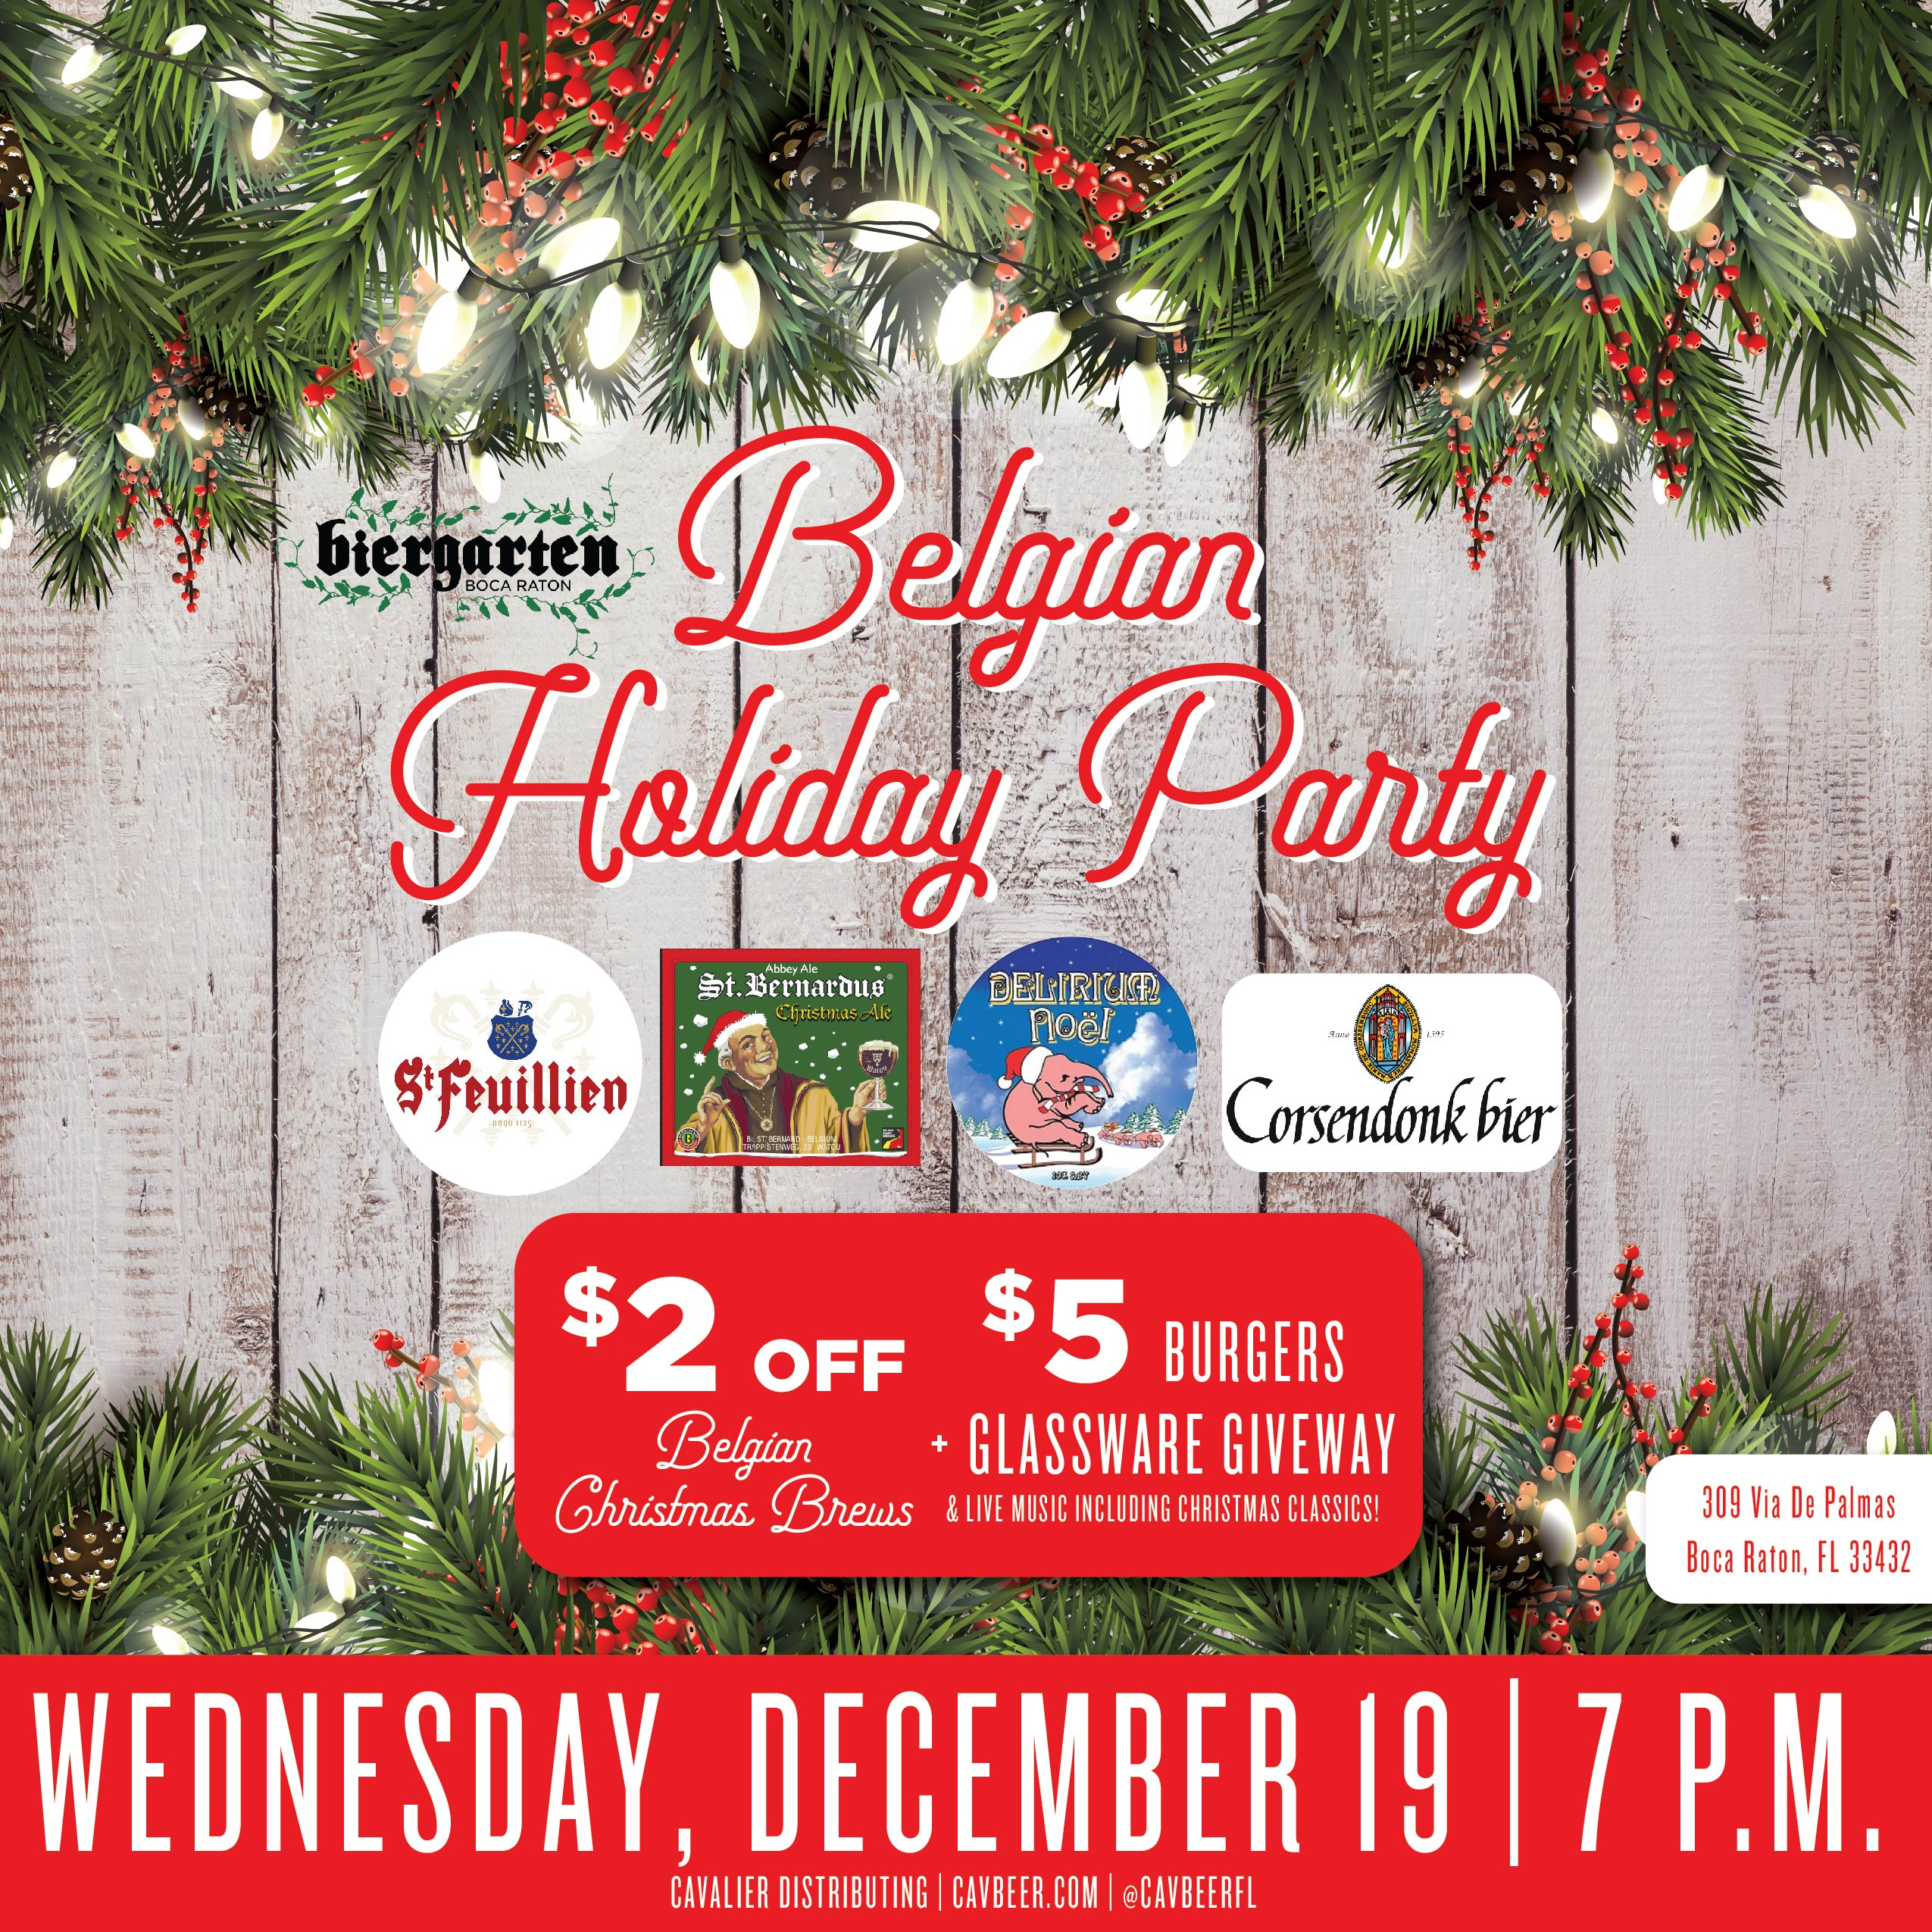 Belgian Holiday Party @ Biergarten Boca Raton